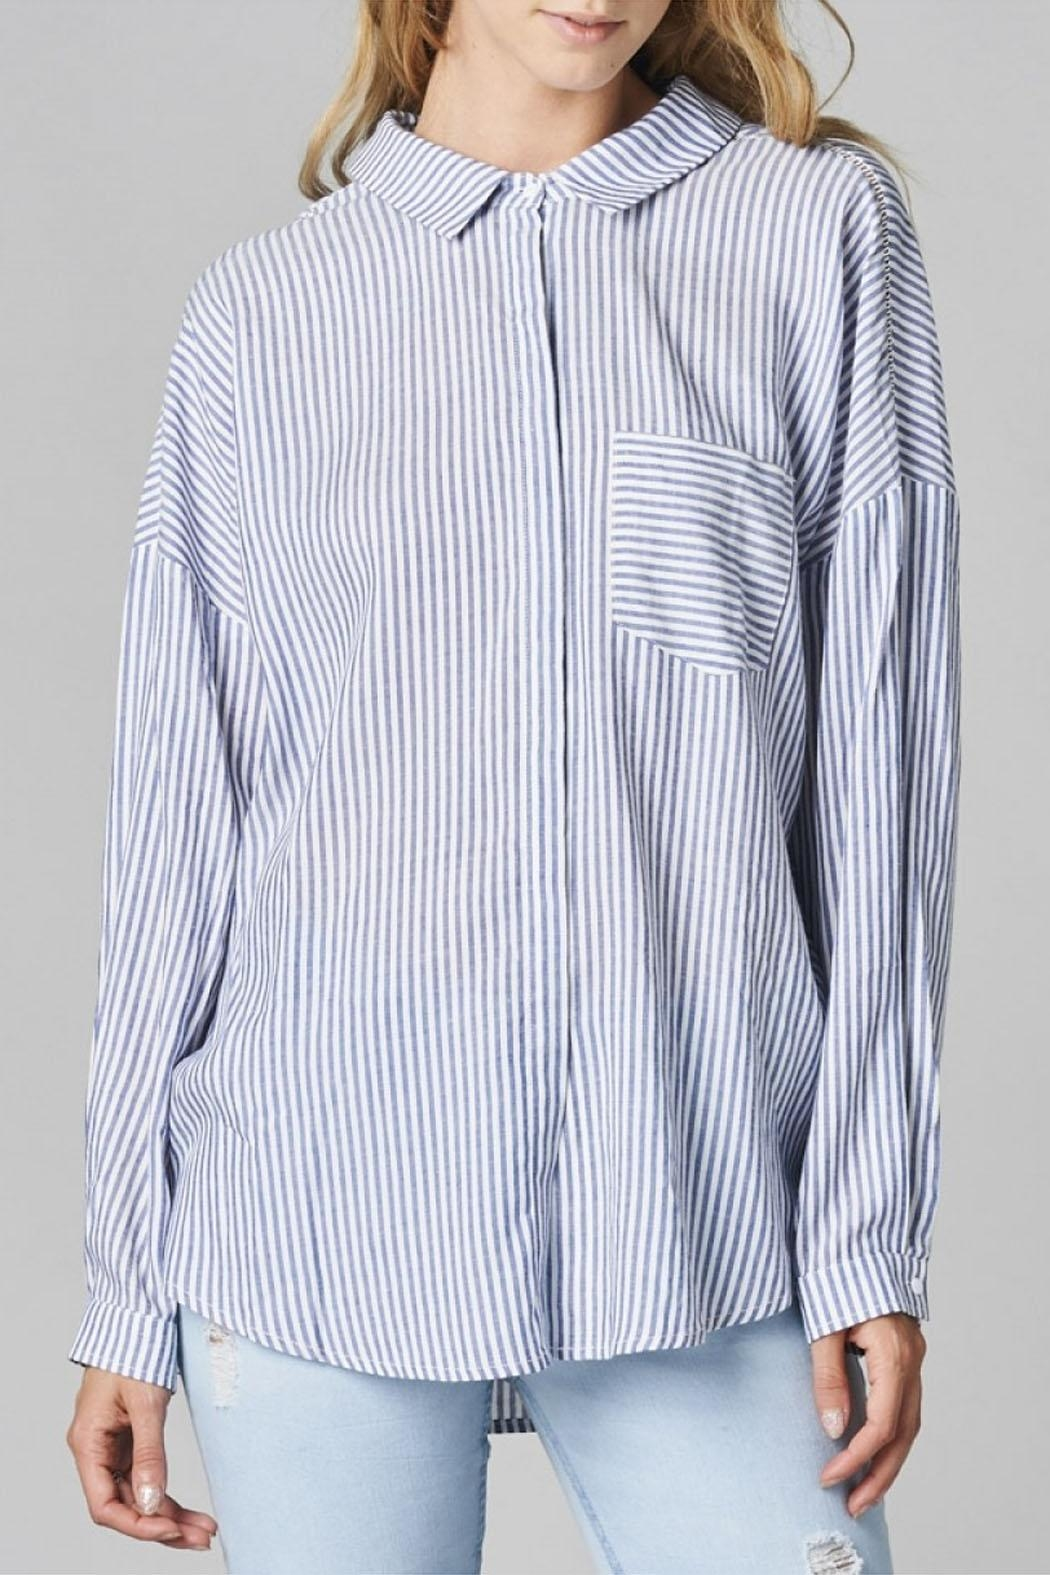 Cotton Bleu Striped Button Up Shirt - Front Cropped Image